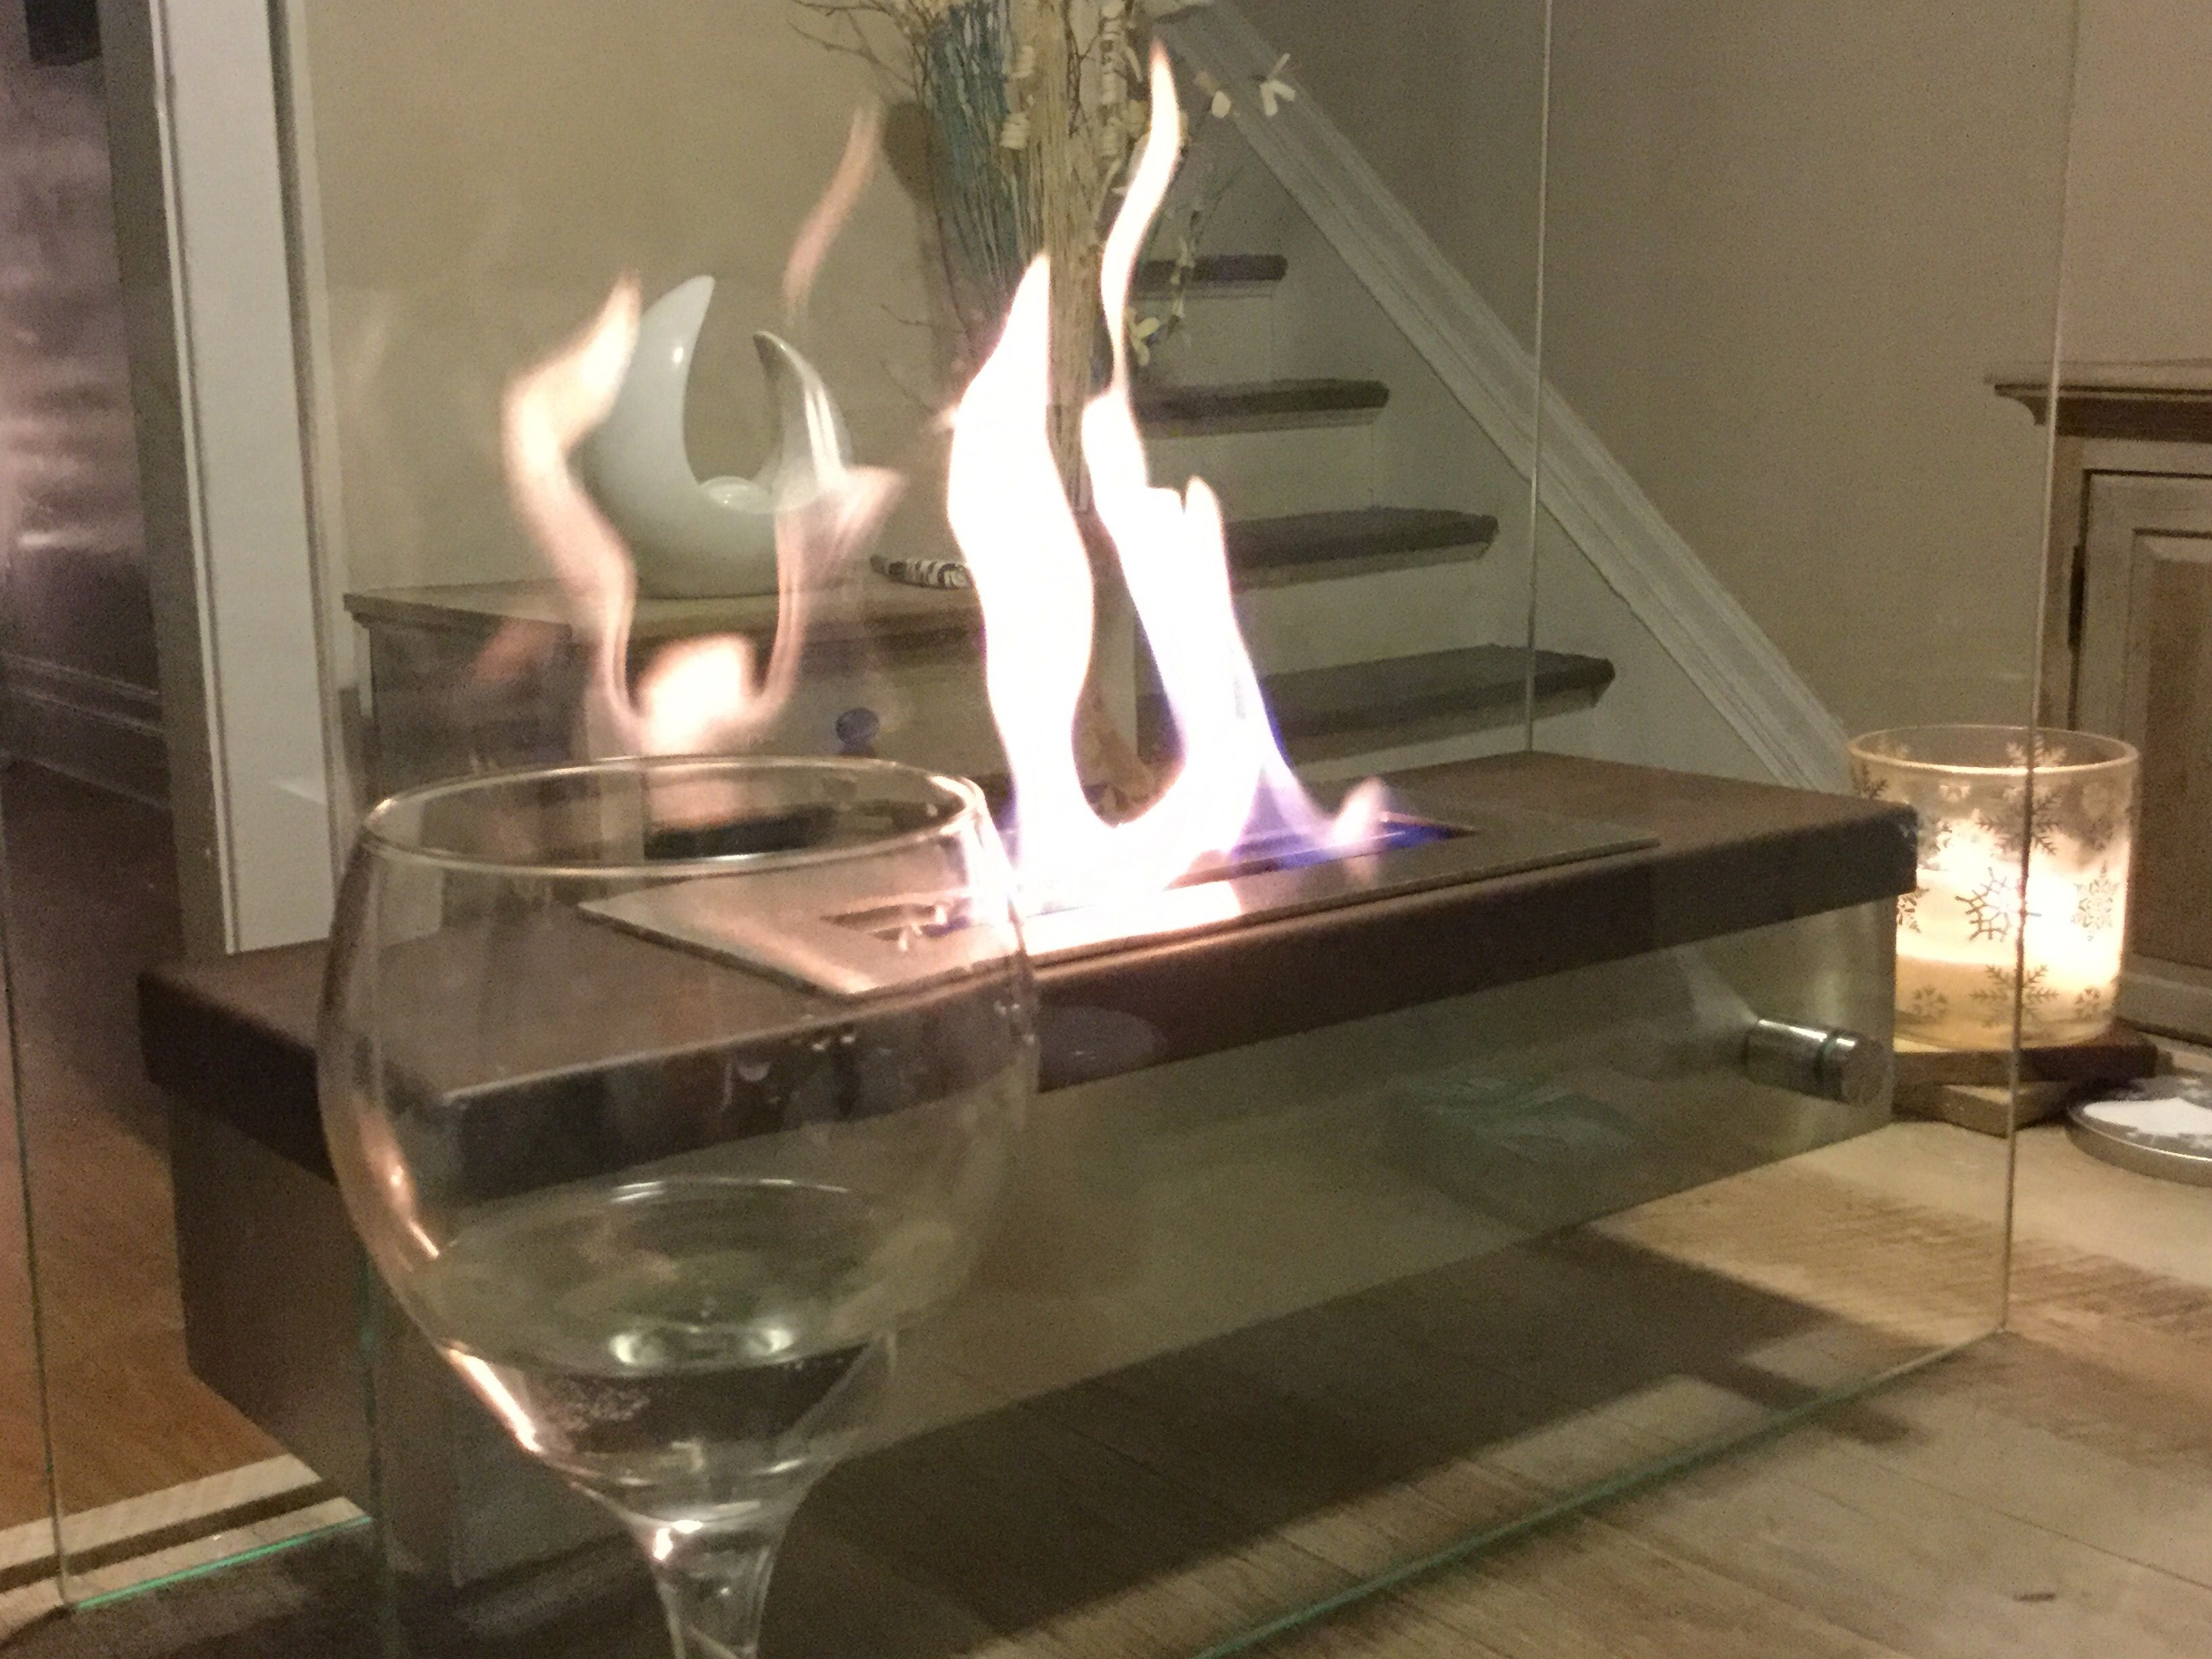 tabletop fireplaces add cozy warmth and ambiance visit cleanflames